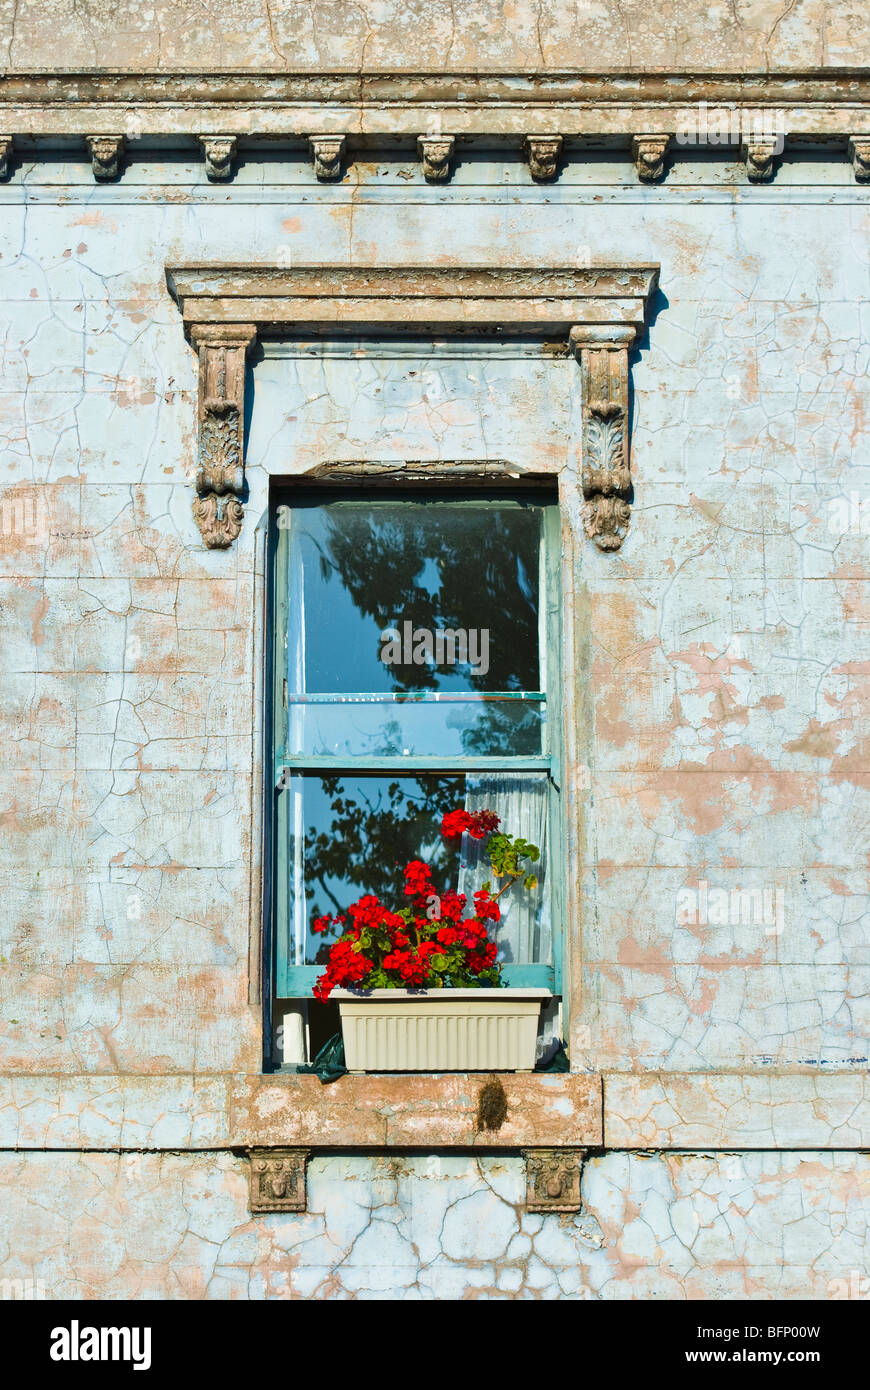 A flower box with bright red Geranium flowers rests on a windowsill. - Stock Image